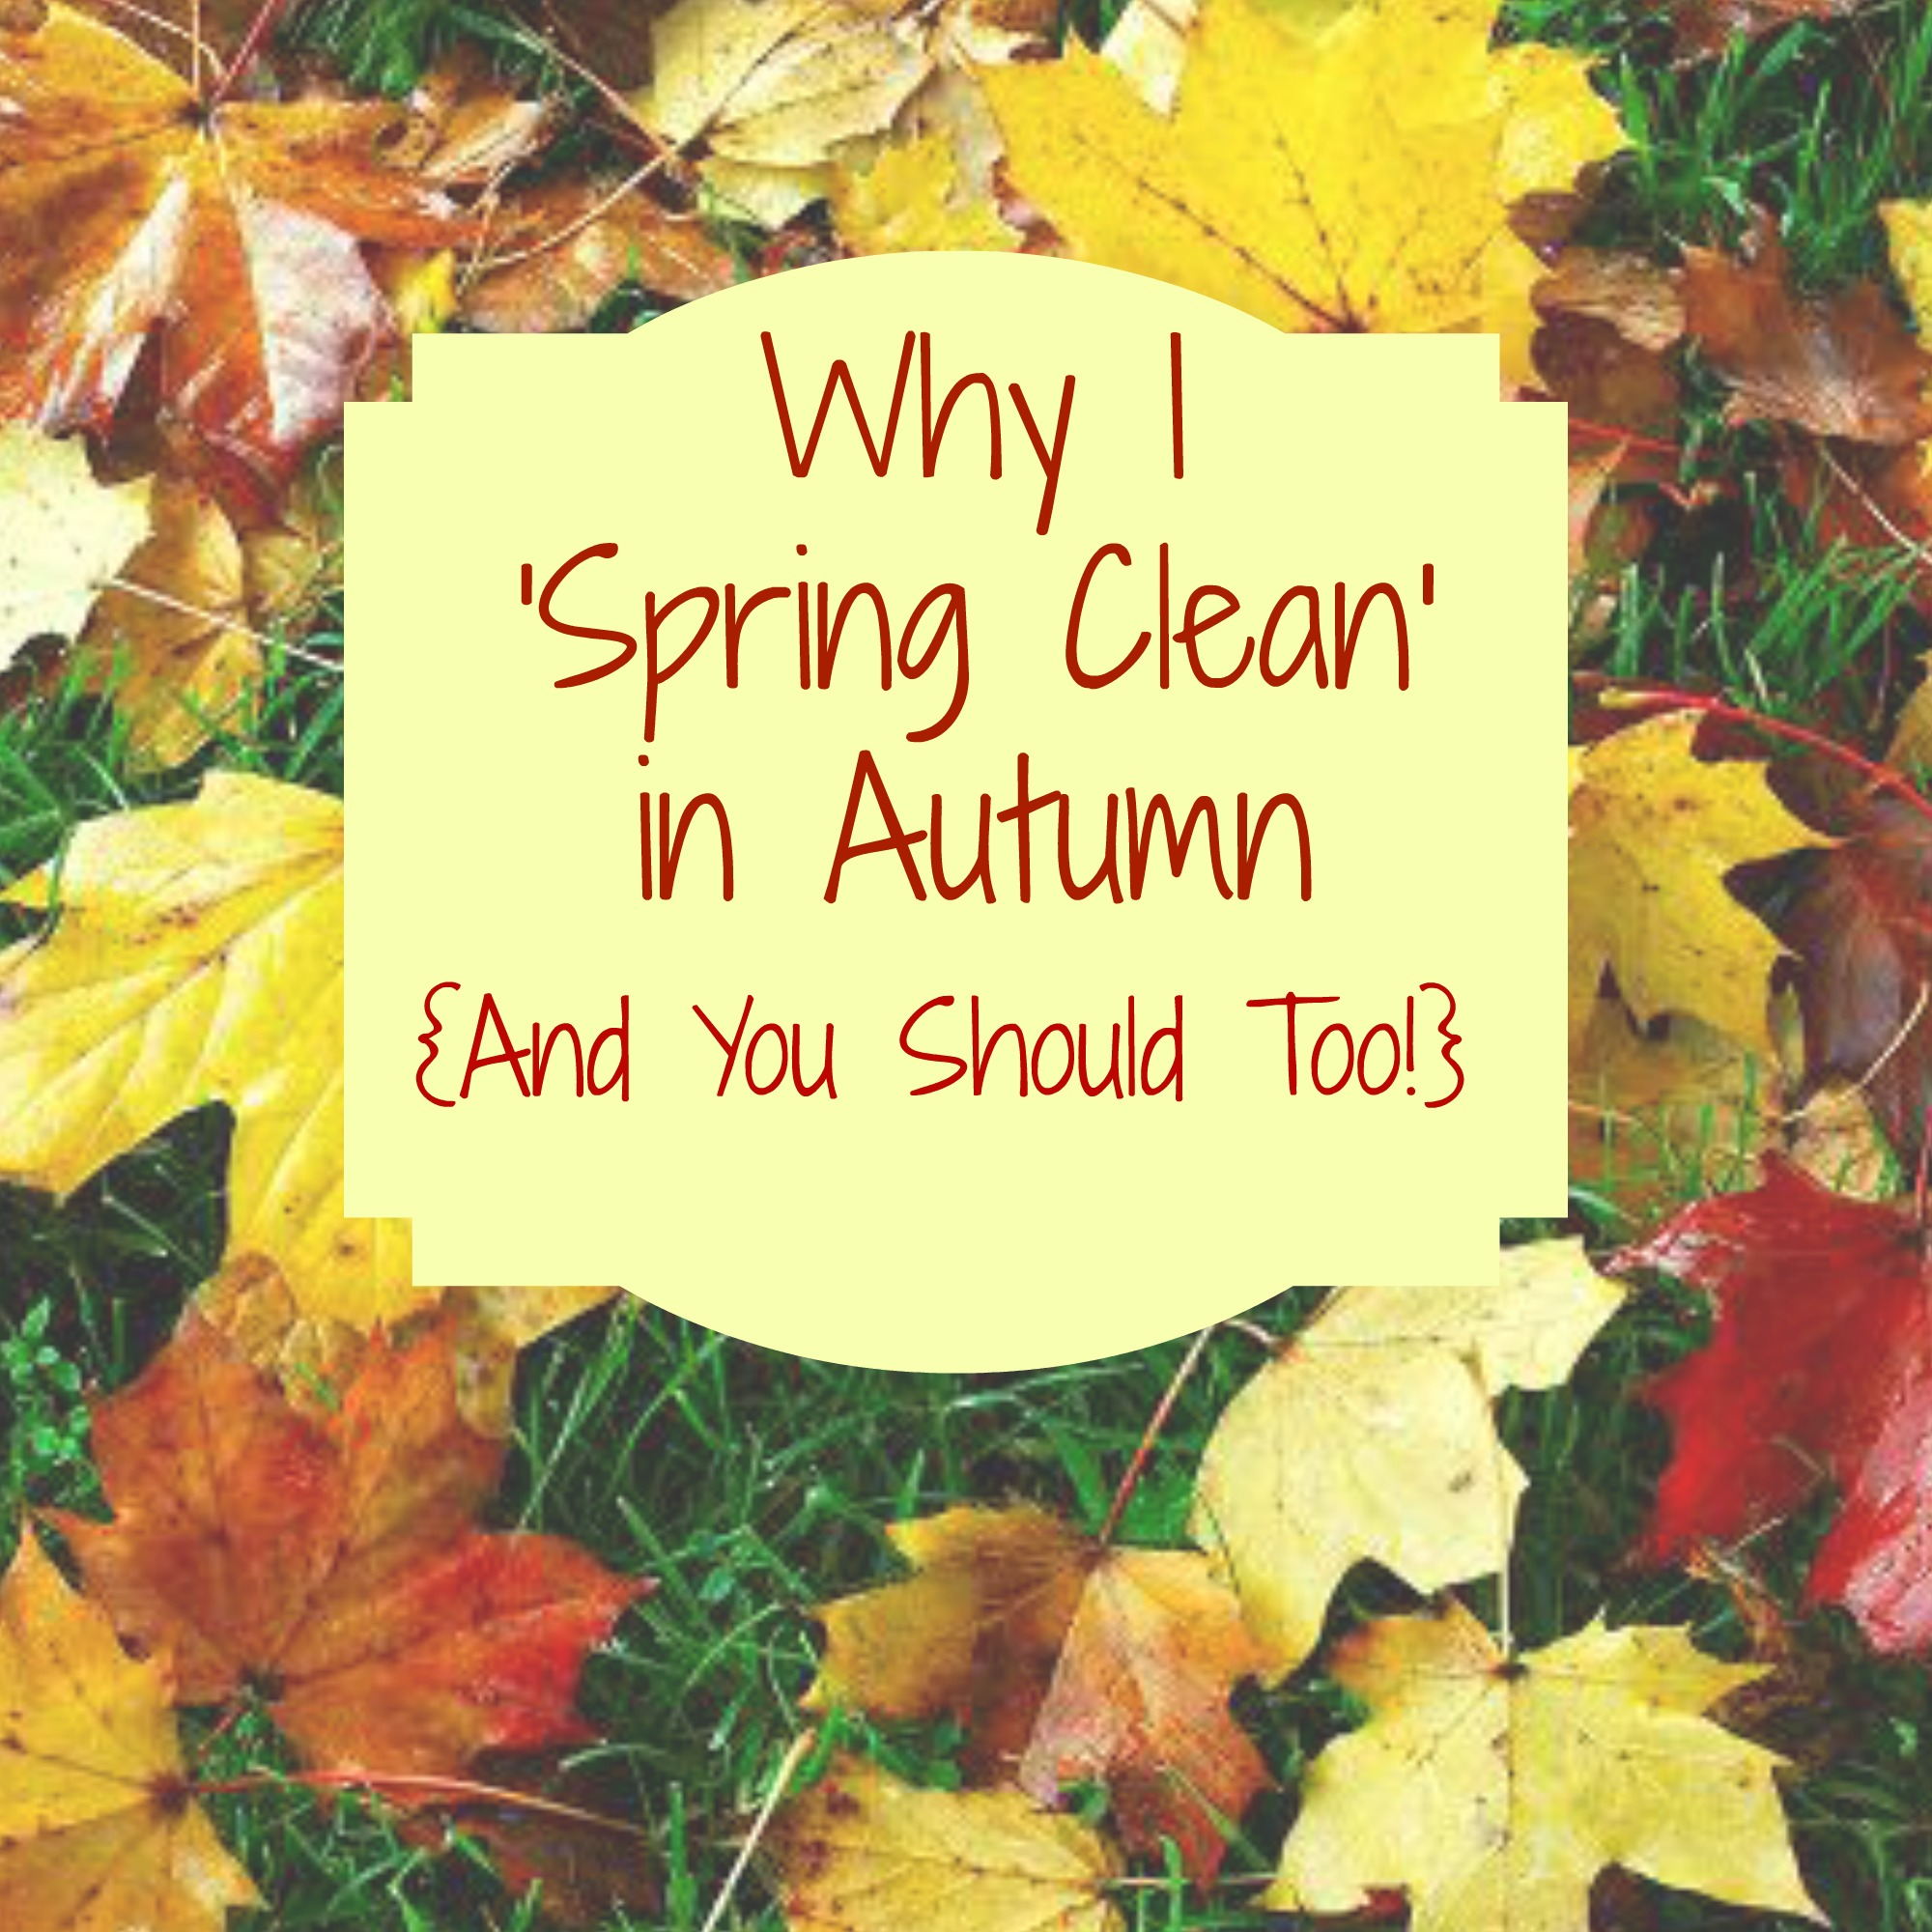 Why You Should Spring Clean In Autumn